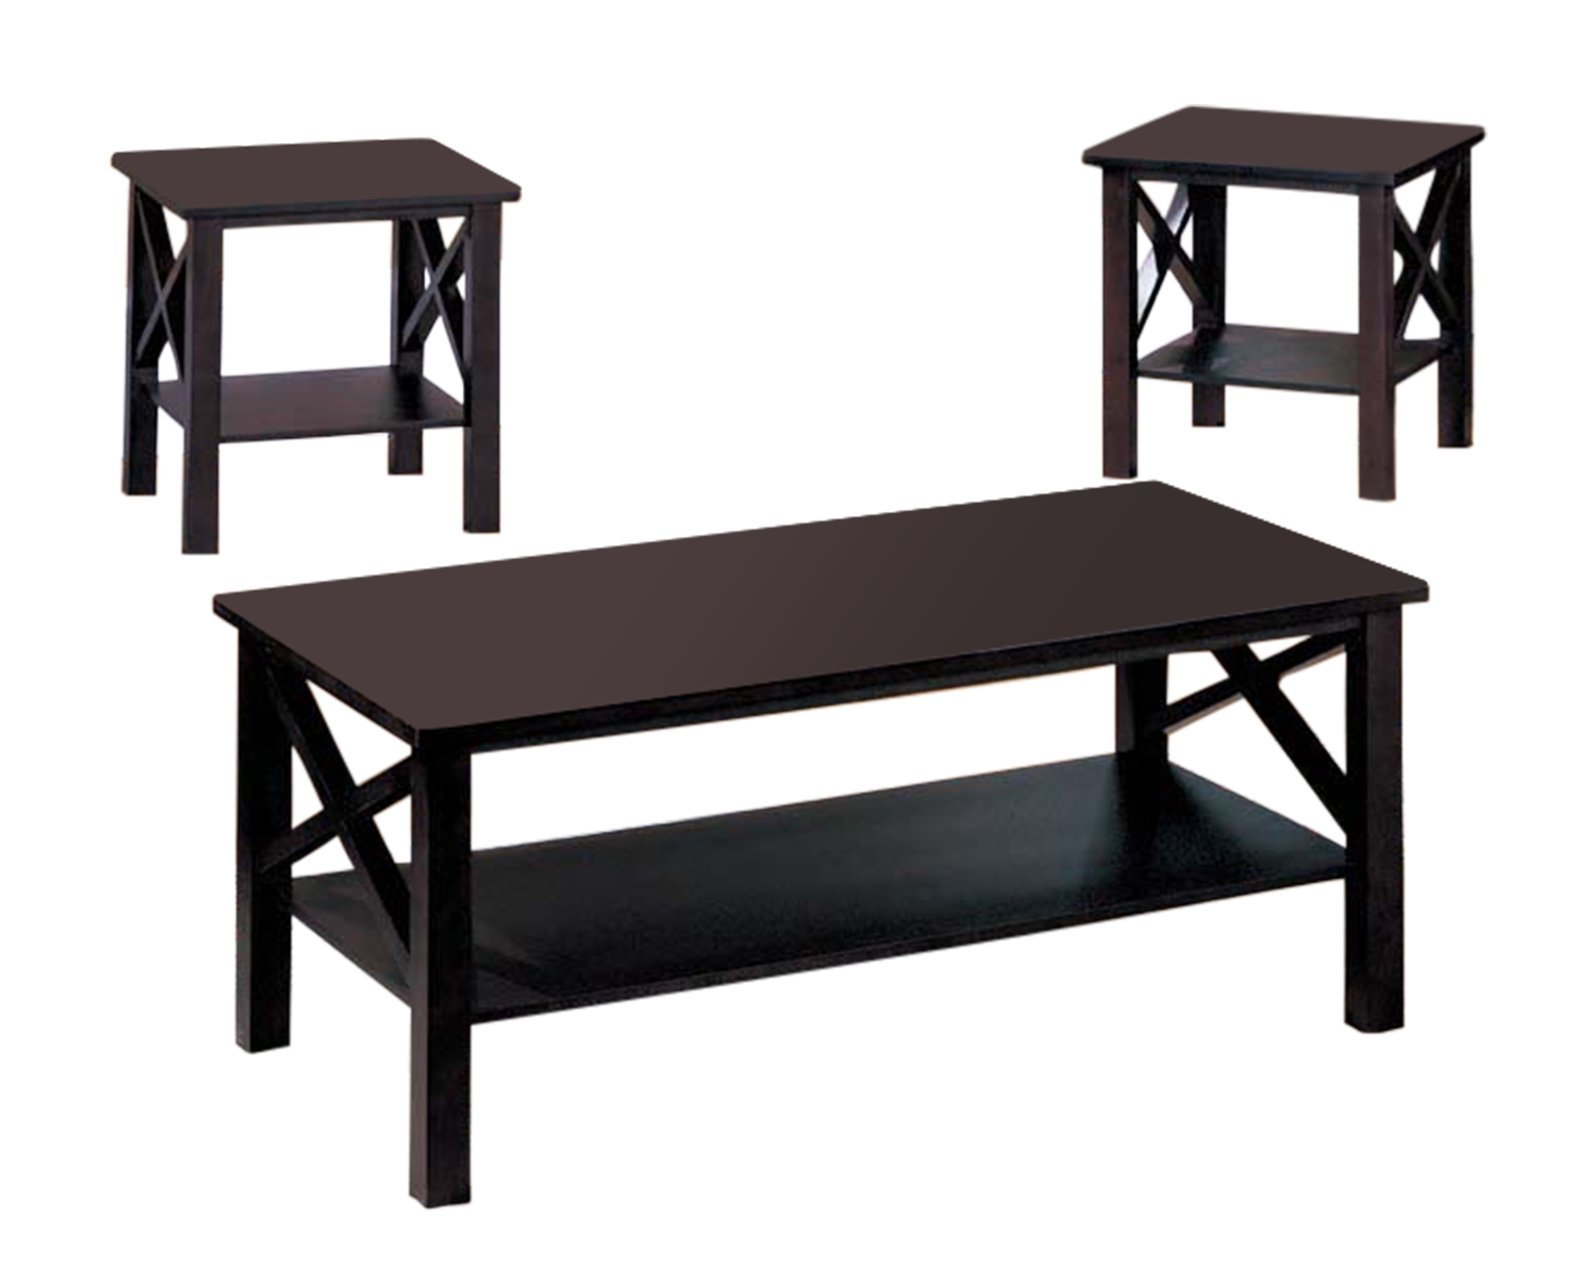 King's Brand 3 Pc. Cherry Finish Wood X Style Casual Coffee Table & 2 End Tables Occasional Set by King's Brand